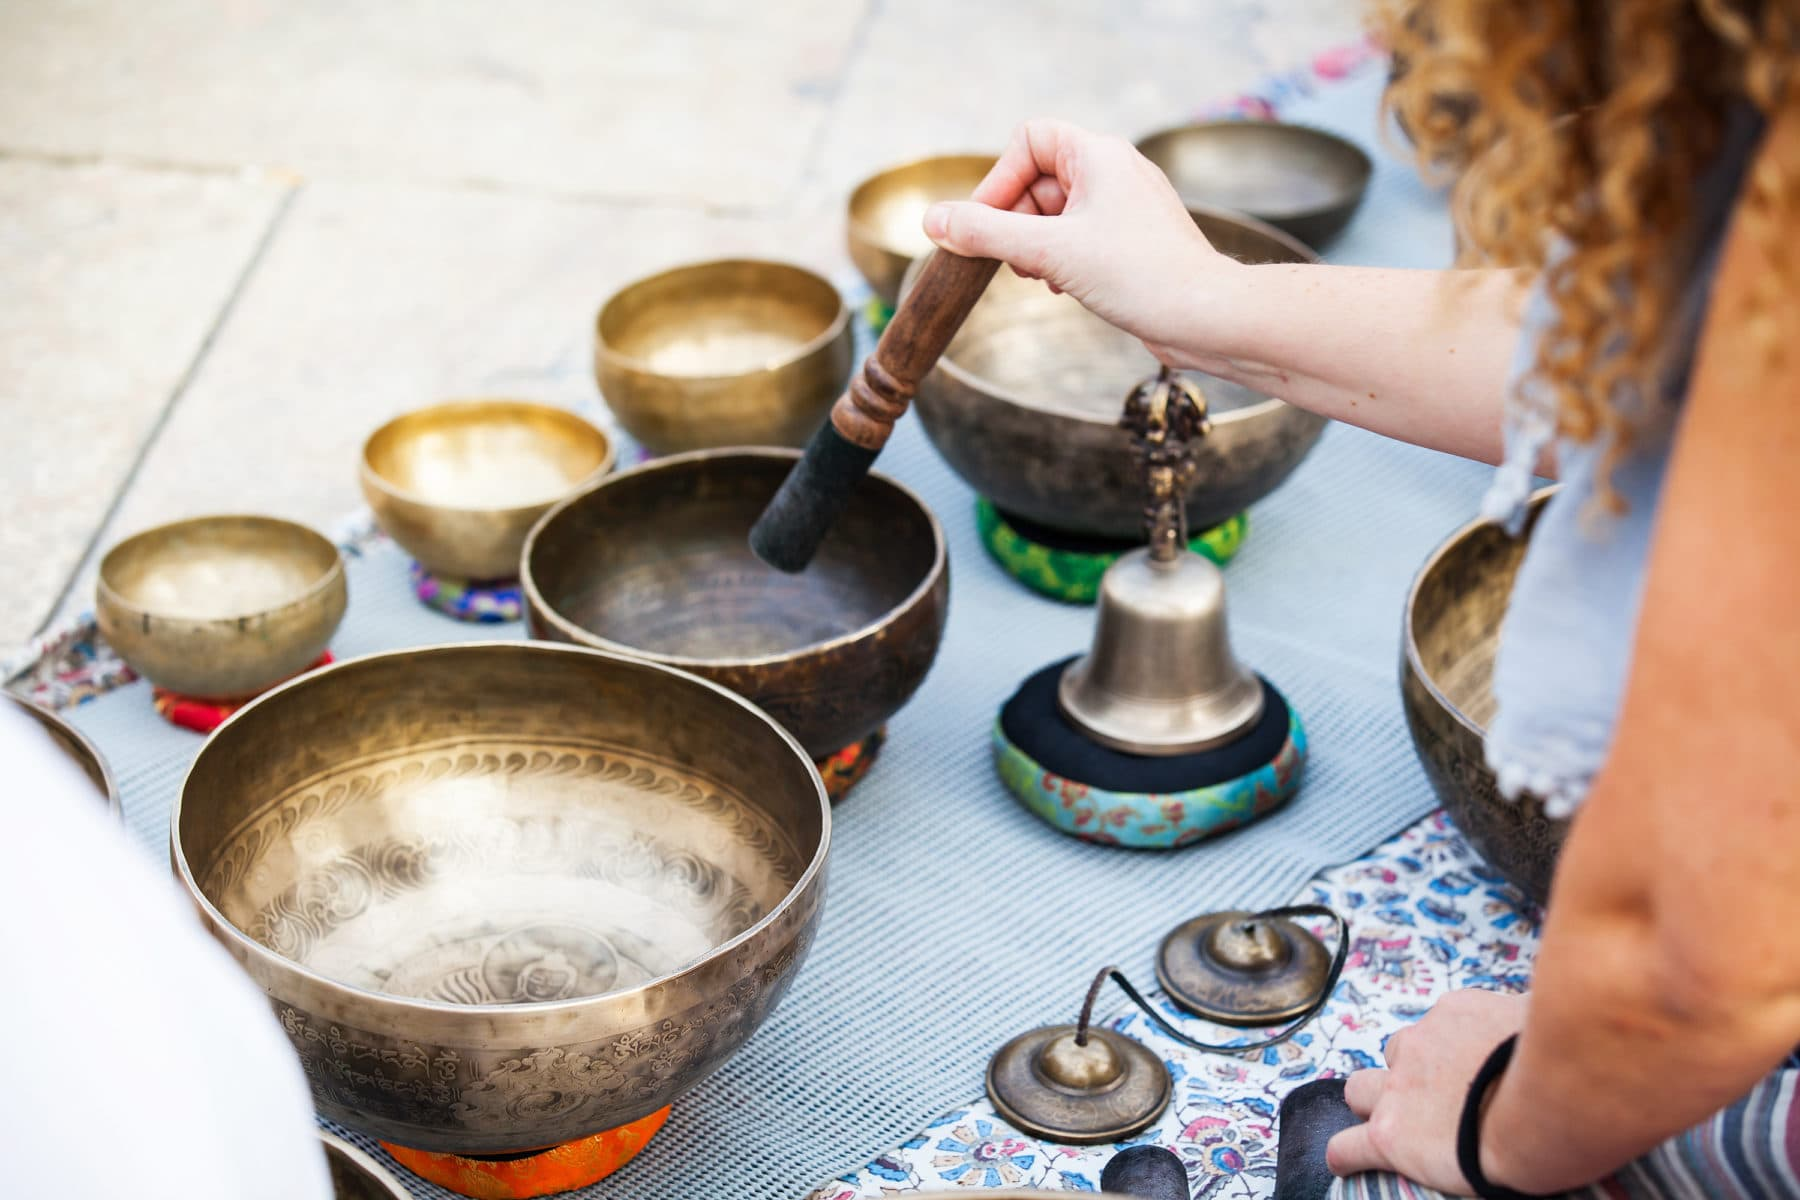 Hand playing tibetan bowls